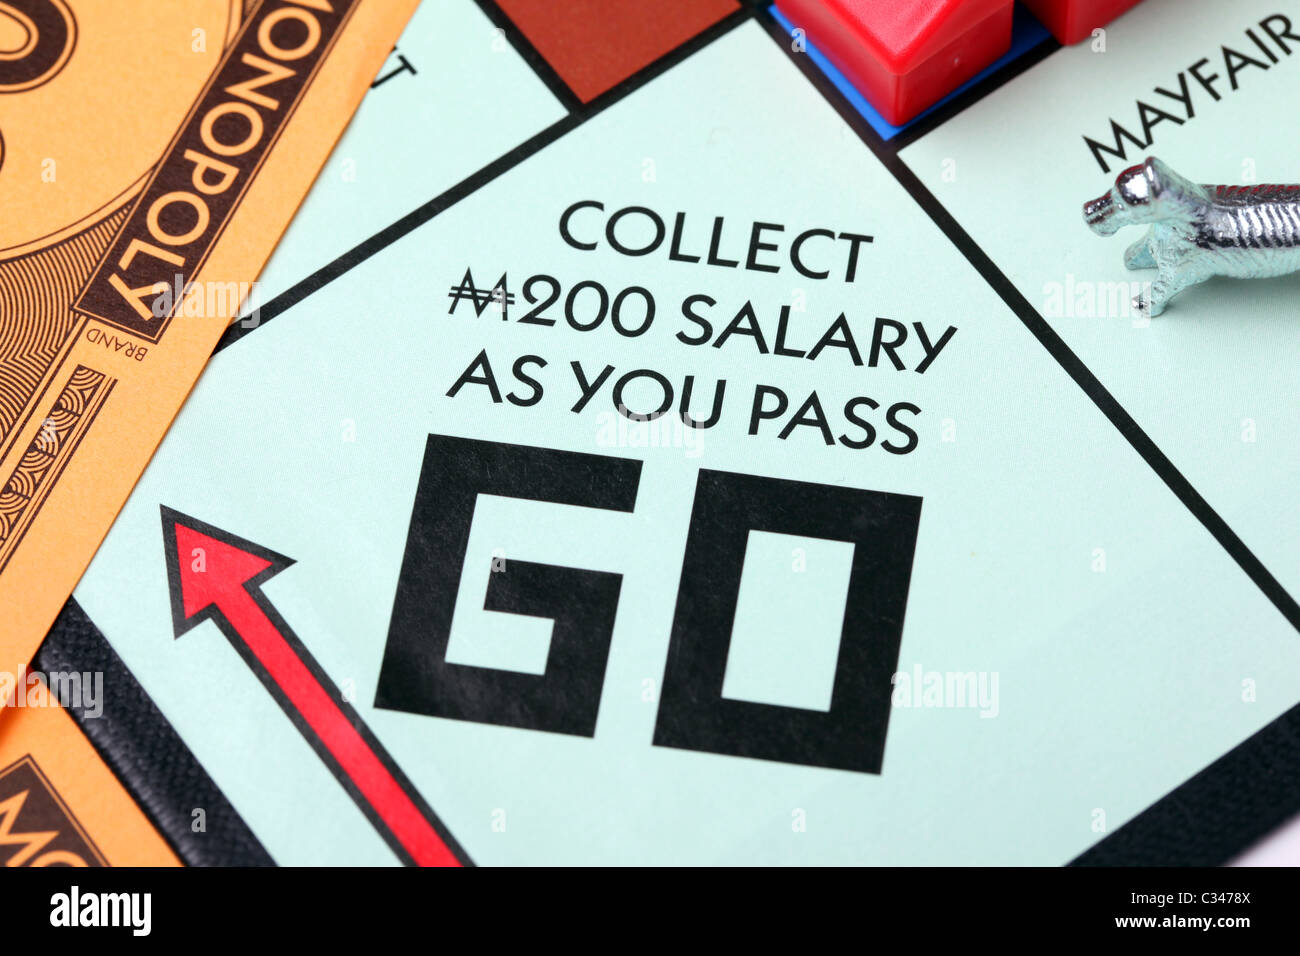 Collect 200 pounds as you pass go. Monopoly Stock Photo ...